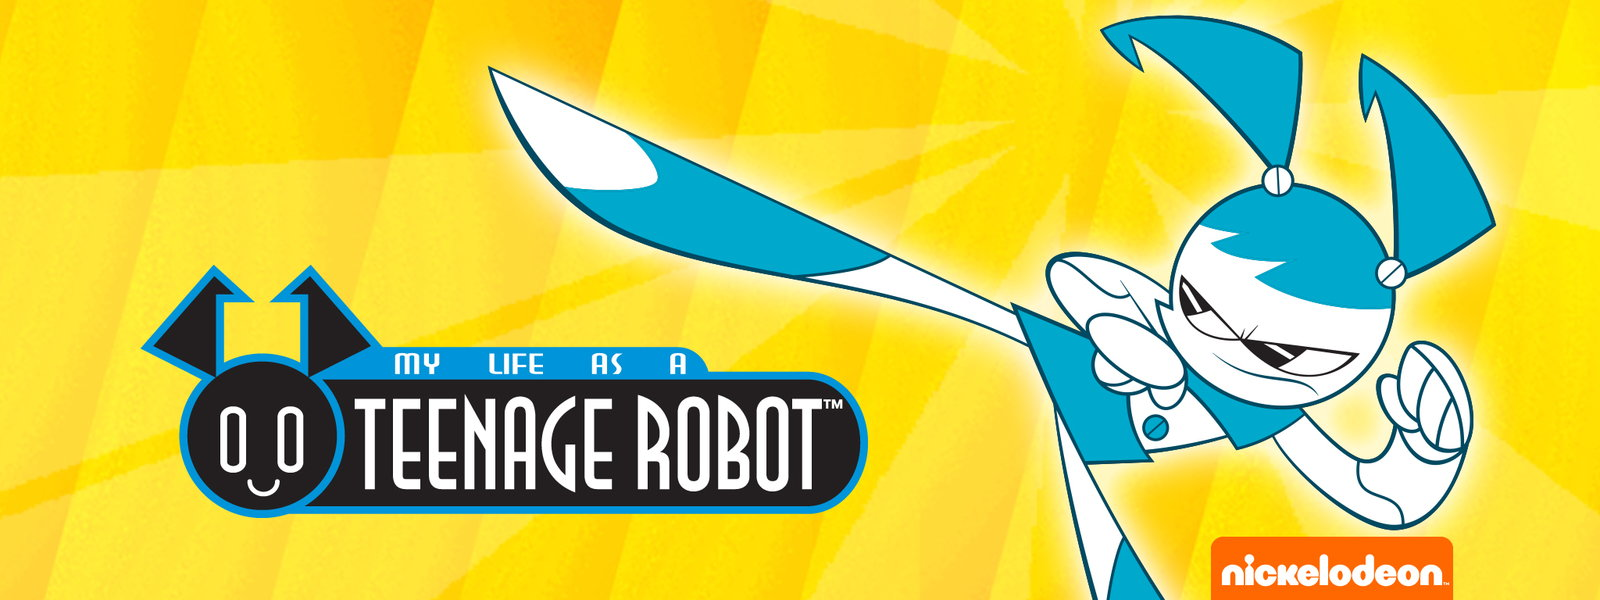 Nickelodeon's My Life As A Teenage Robot